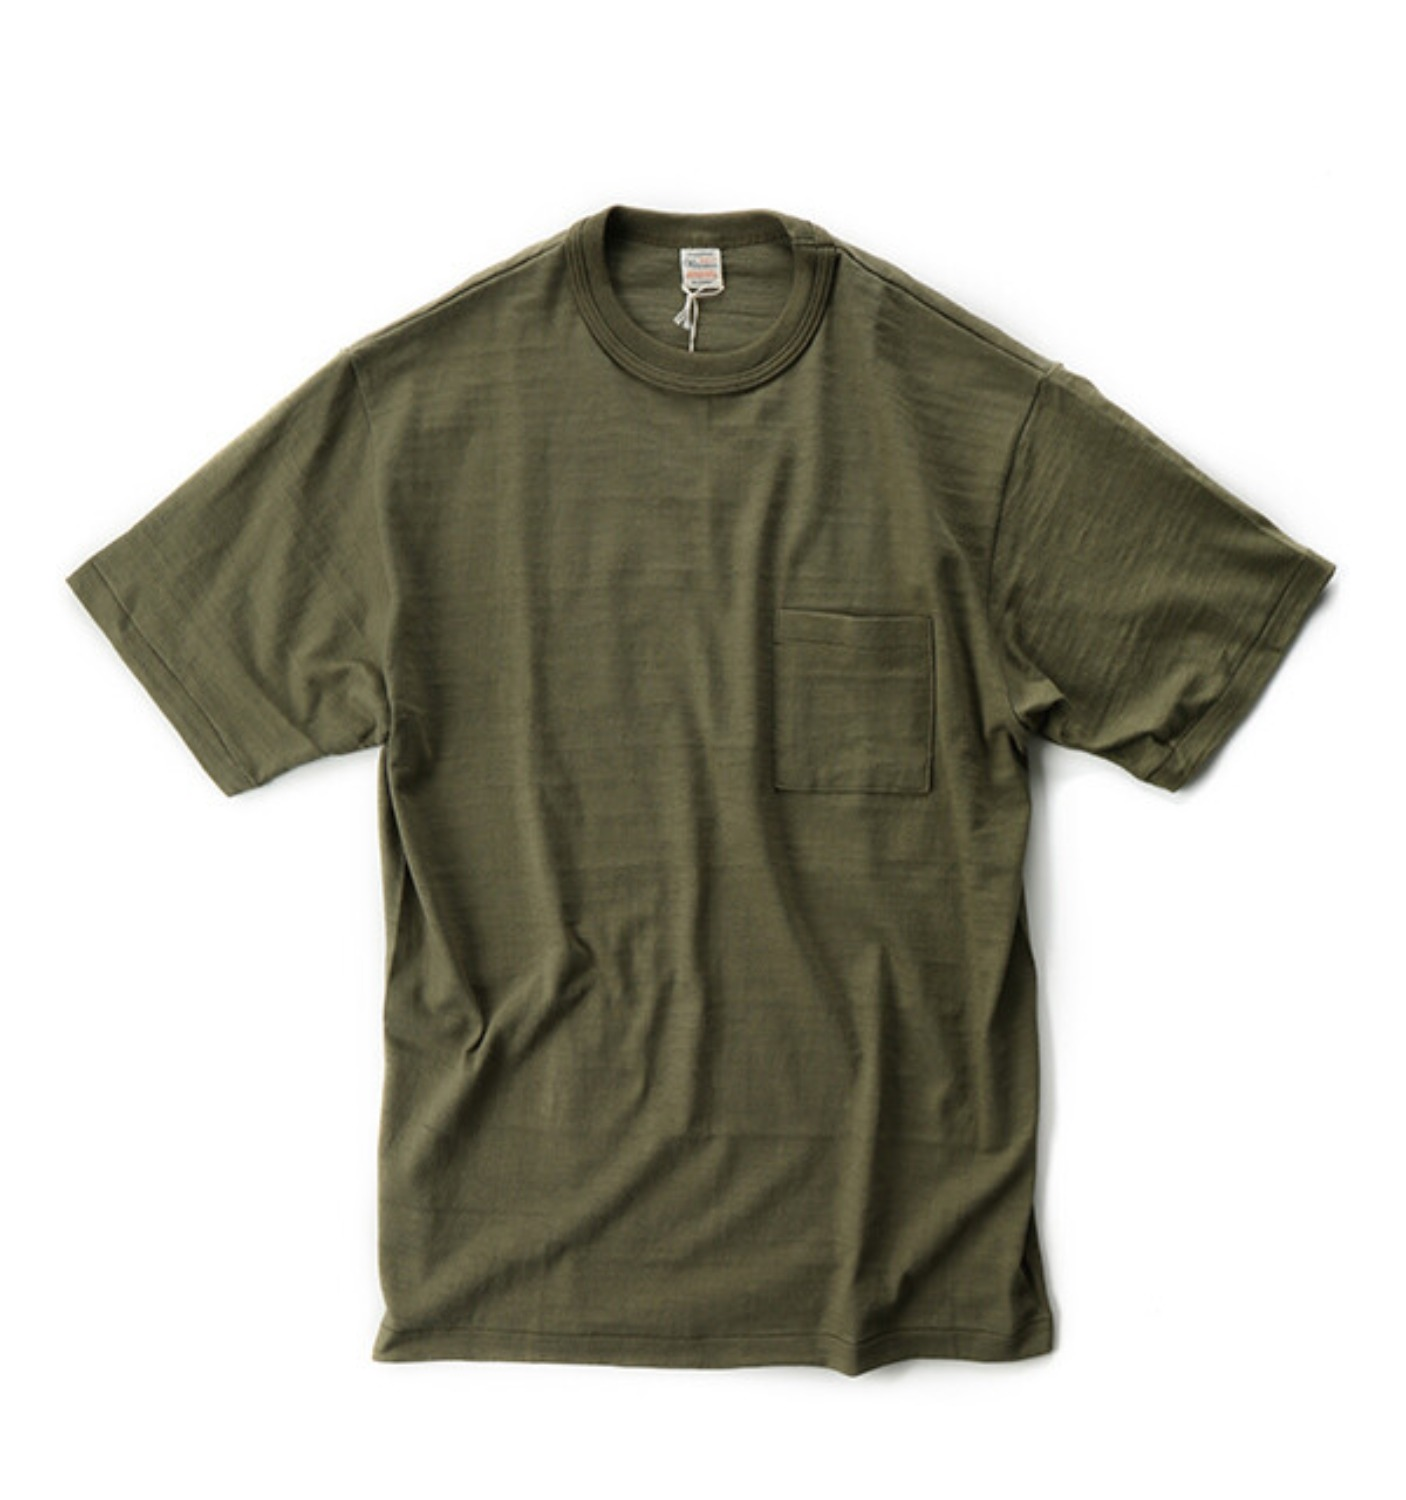 LOT 4601 POCKET OLIVE